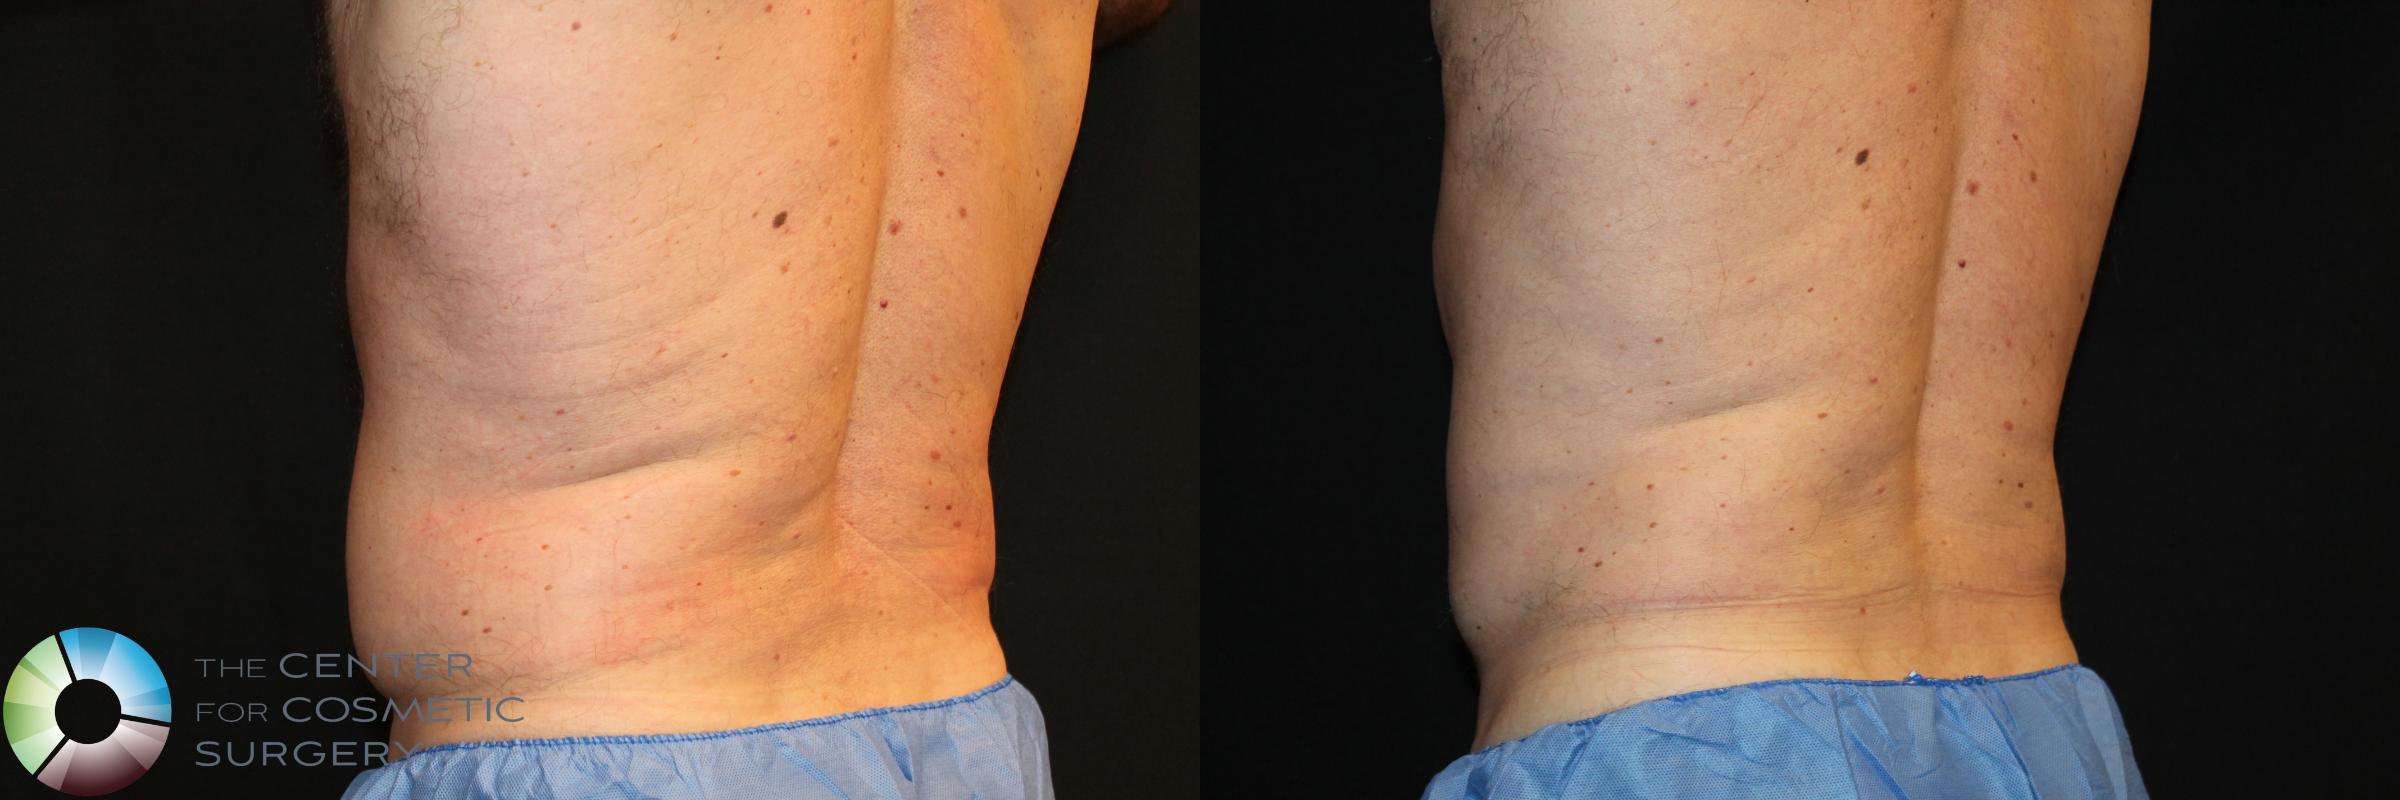 CoolSculpting Case 746 Before & After View #1 | Golden, CO | The Center for Cosmetic Surgery